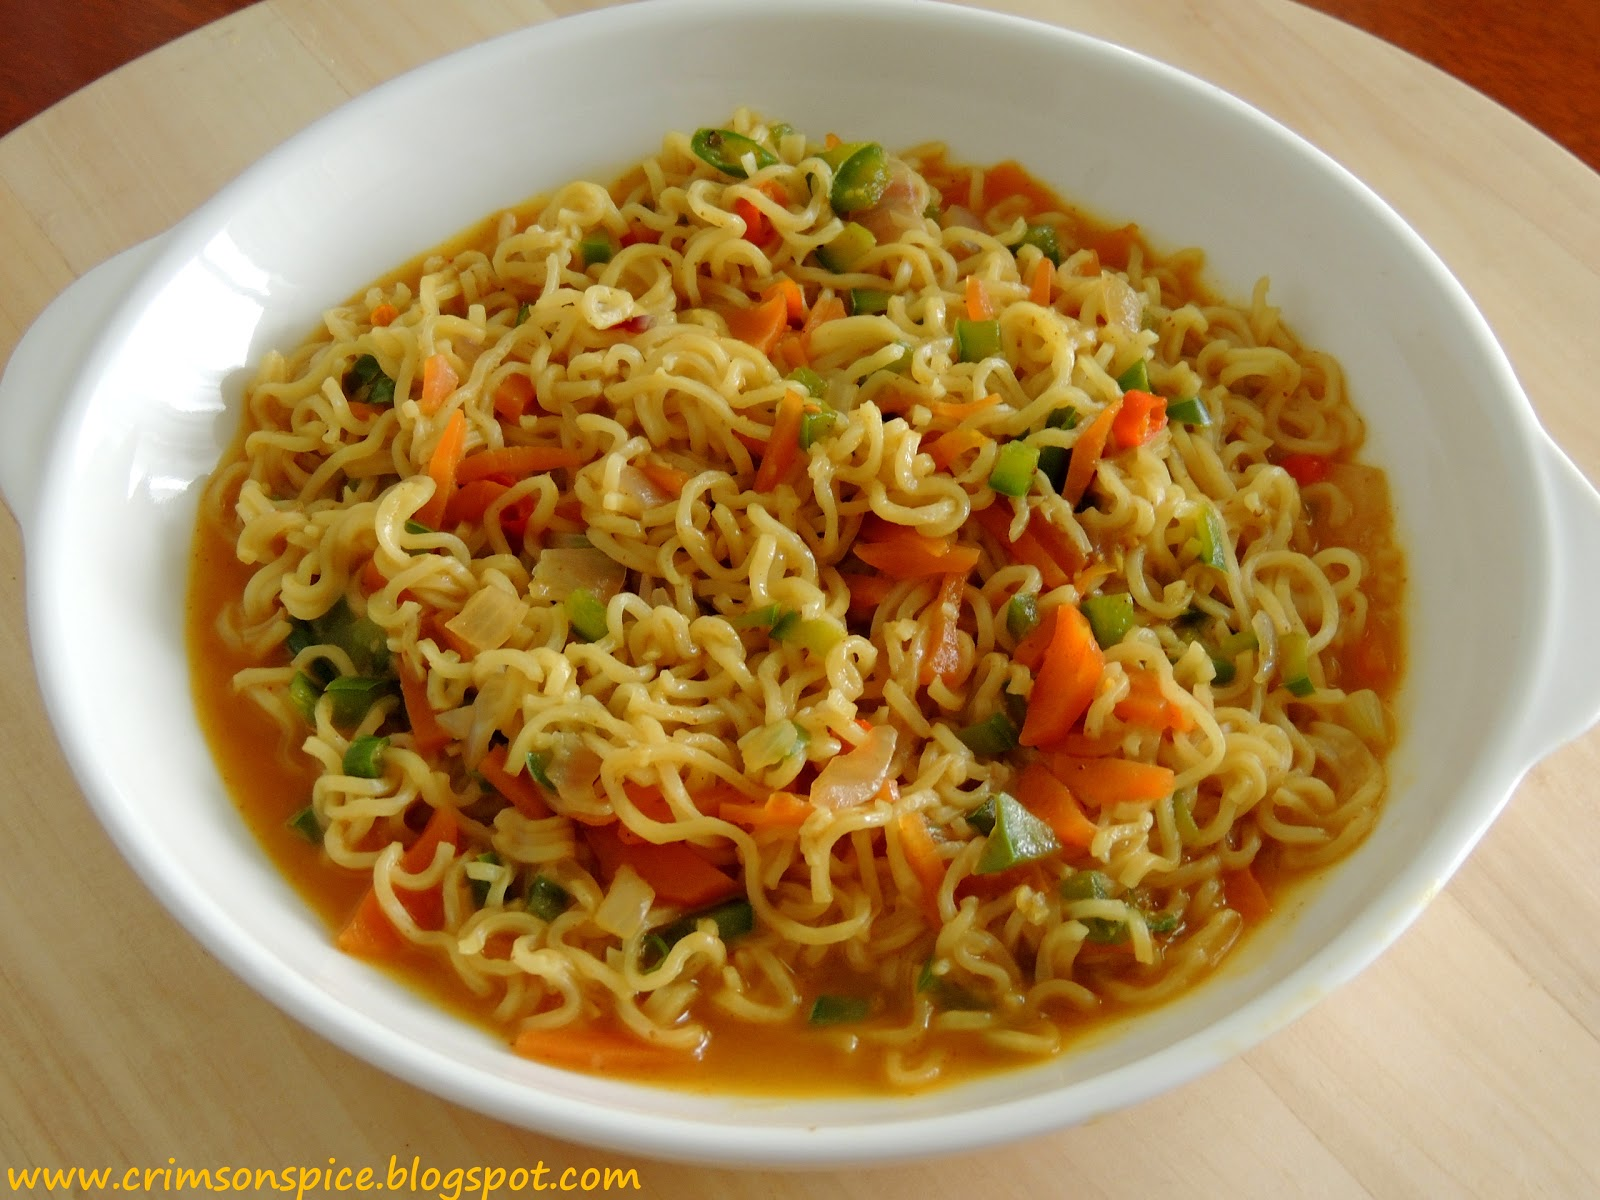 Noodles Masala Powder http://crimsonspice.blogspot.com/2013/01/maggie-masala-noodles-with-vegetables.html